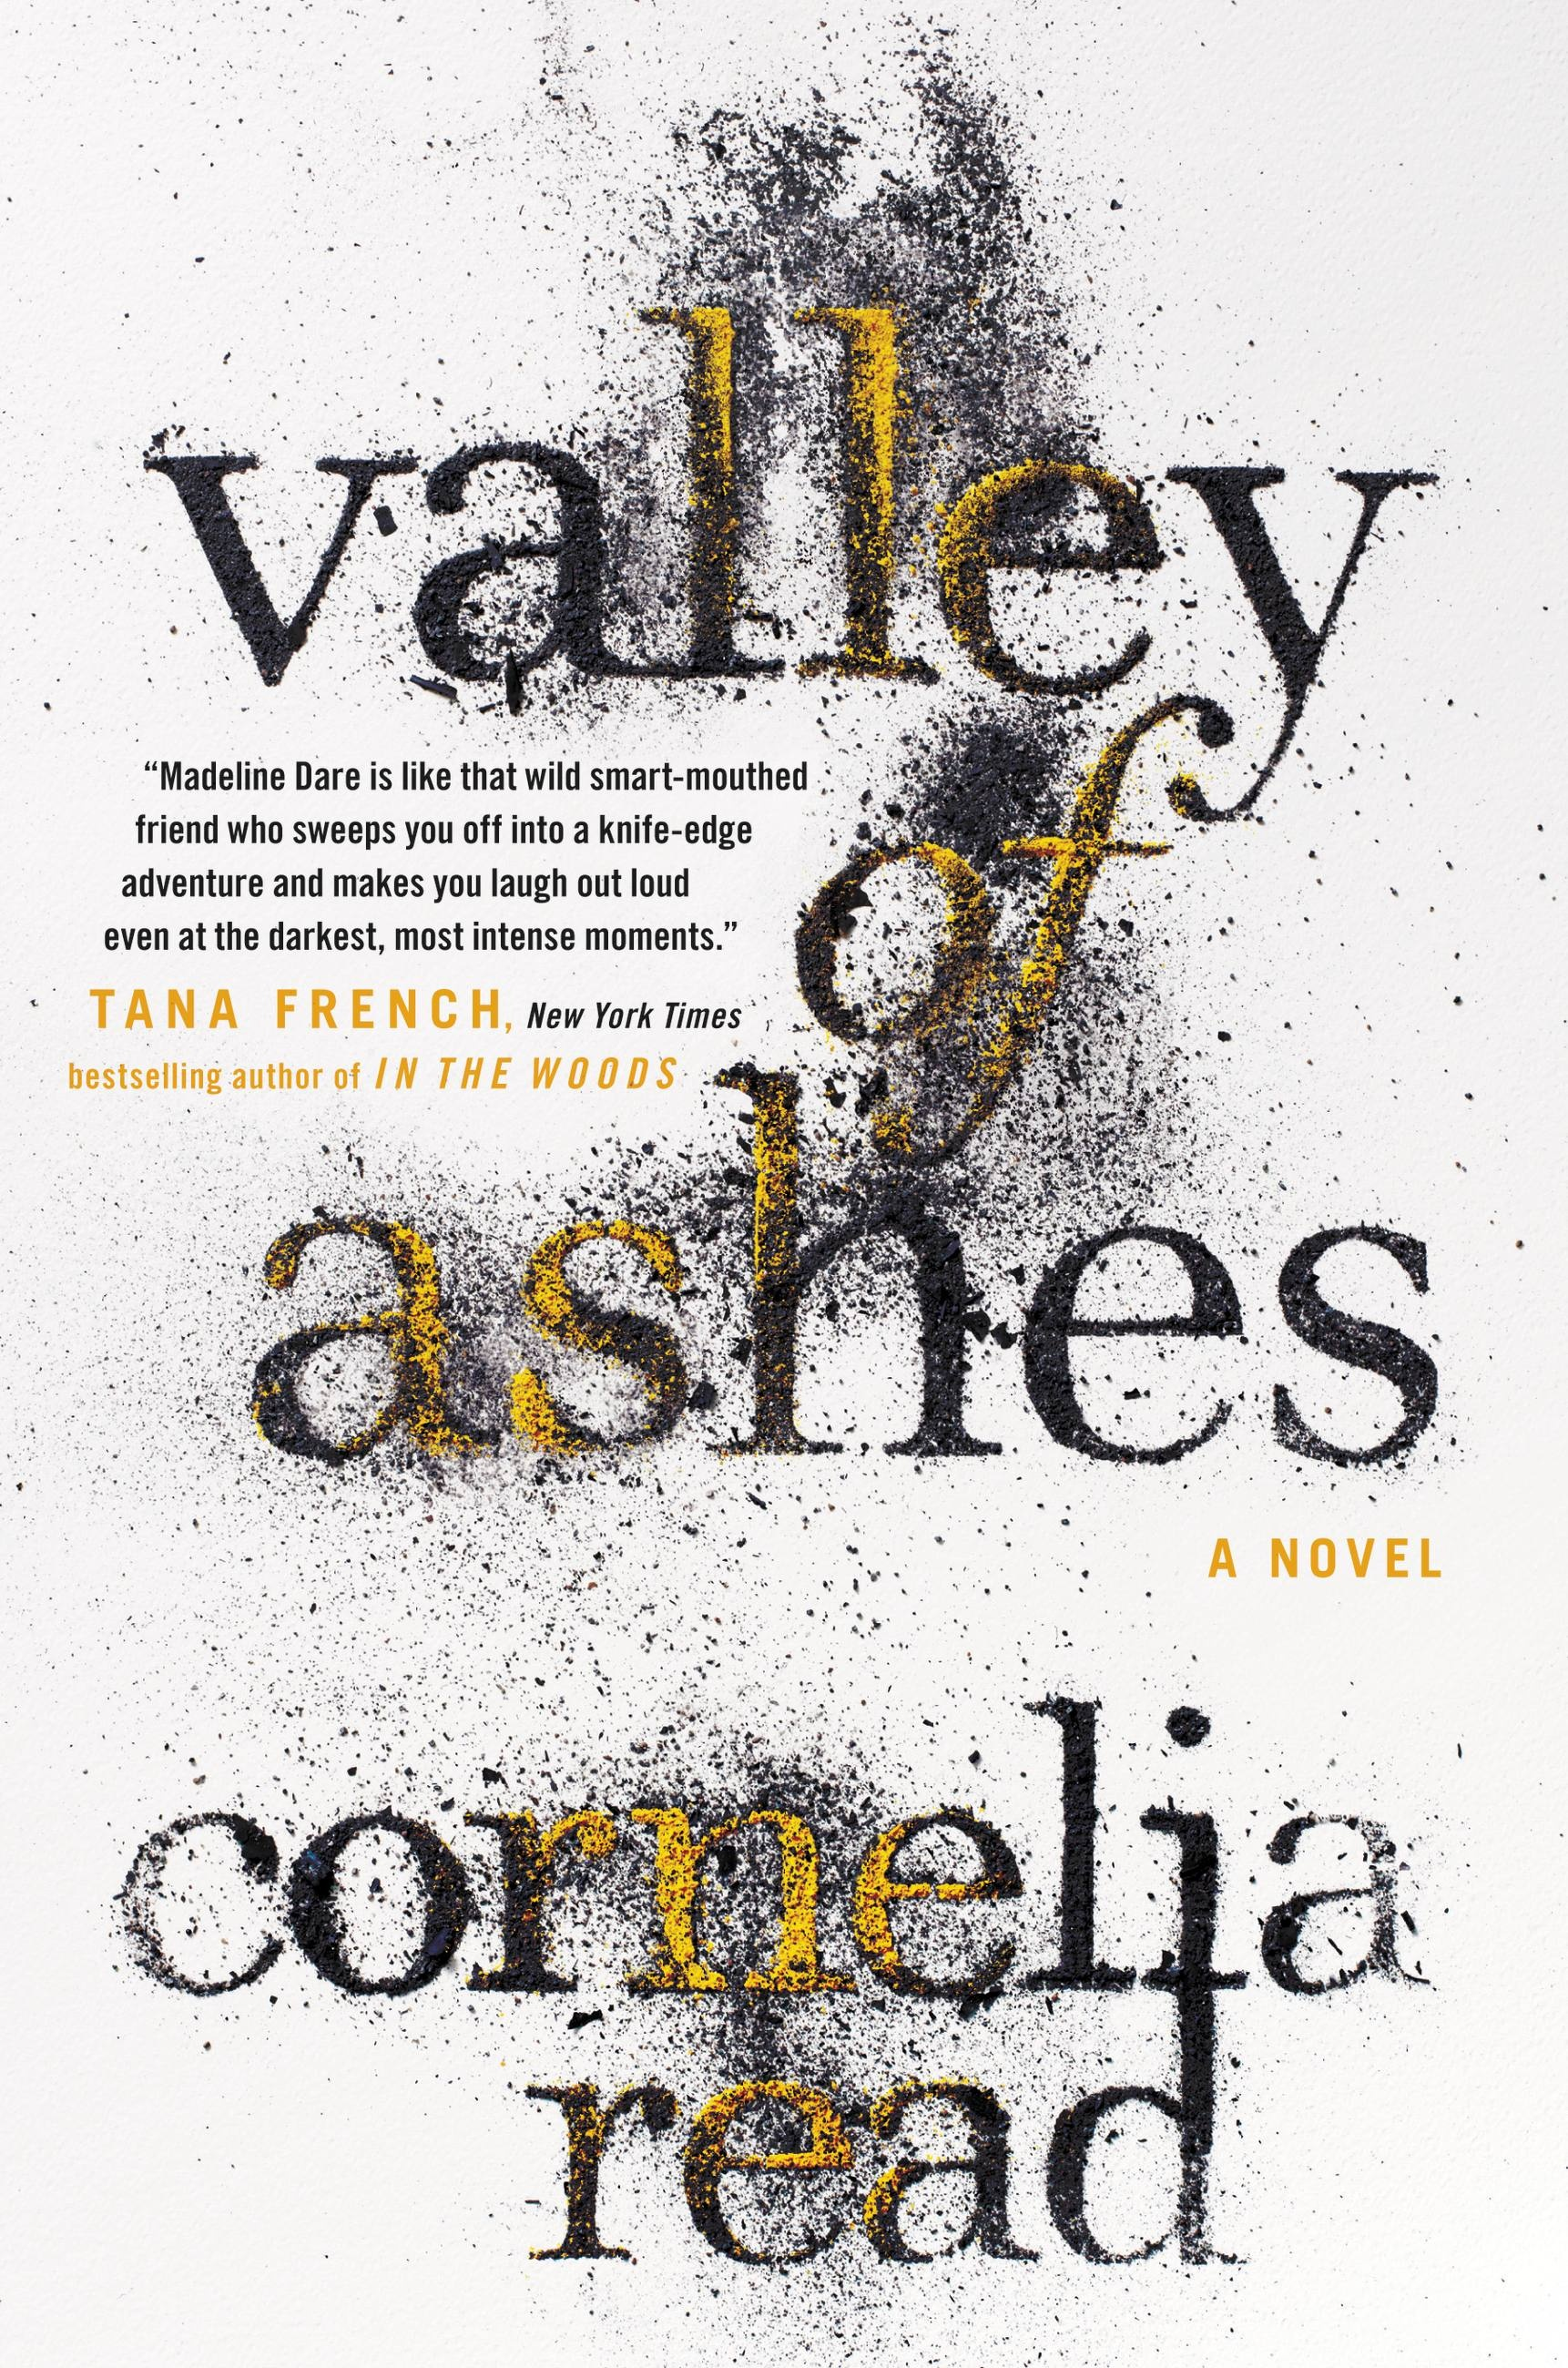 Valley of Ashes by Cornelia Read | Hachette Book Group